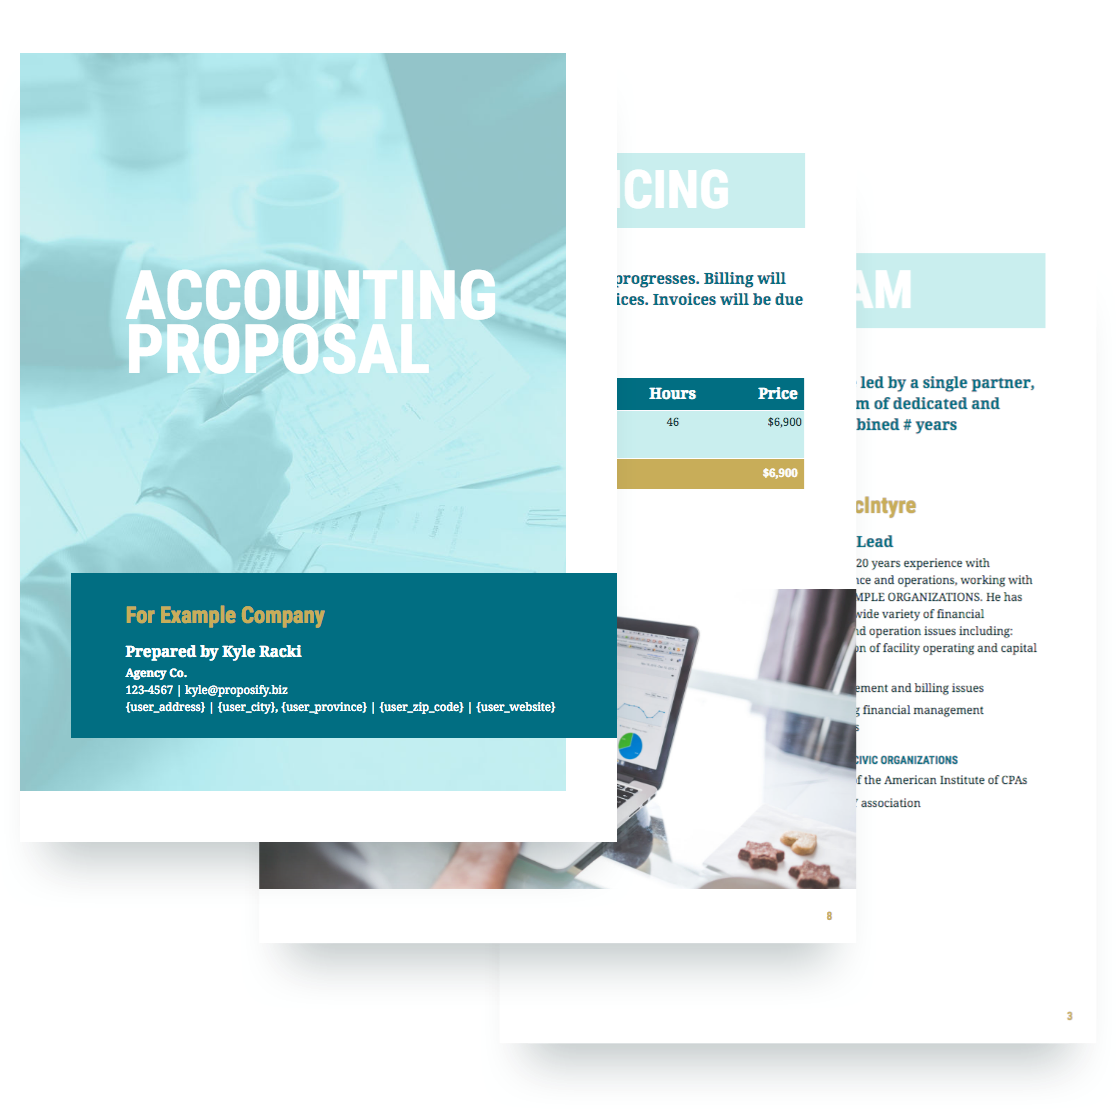 Accounting proposal template free sample accounting proposal template maxwellsz